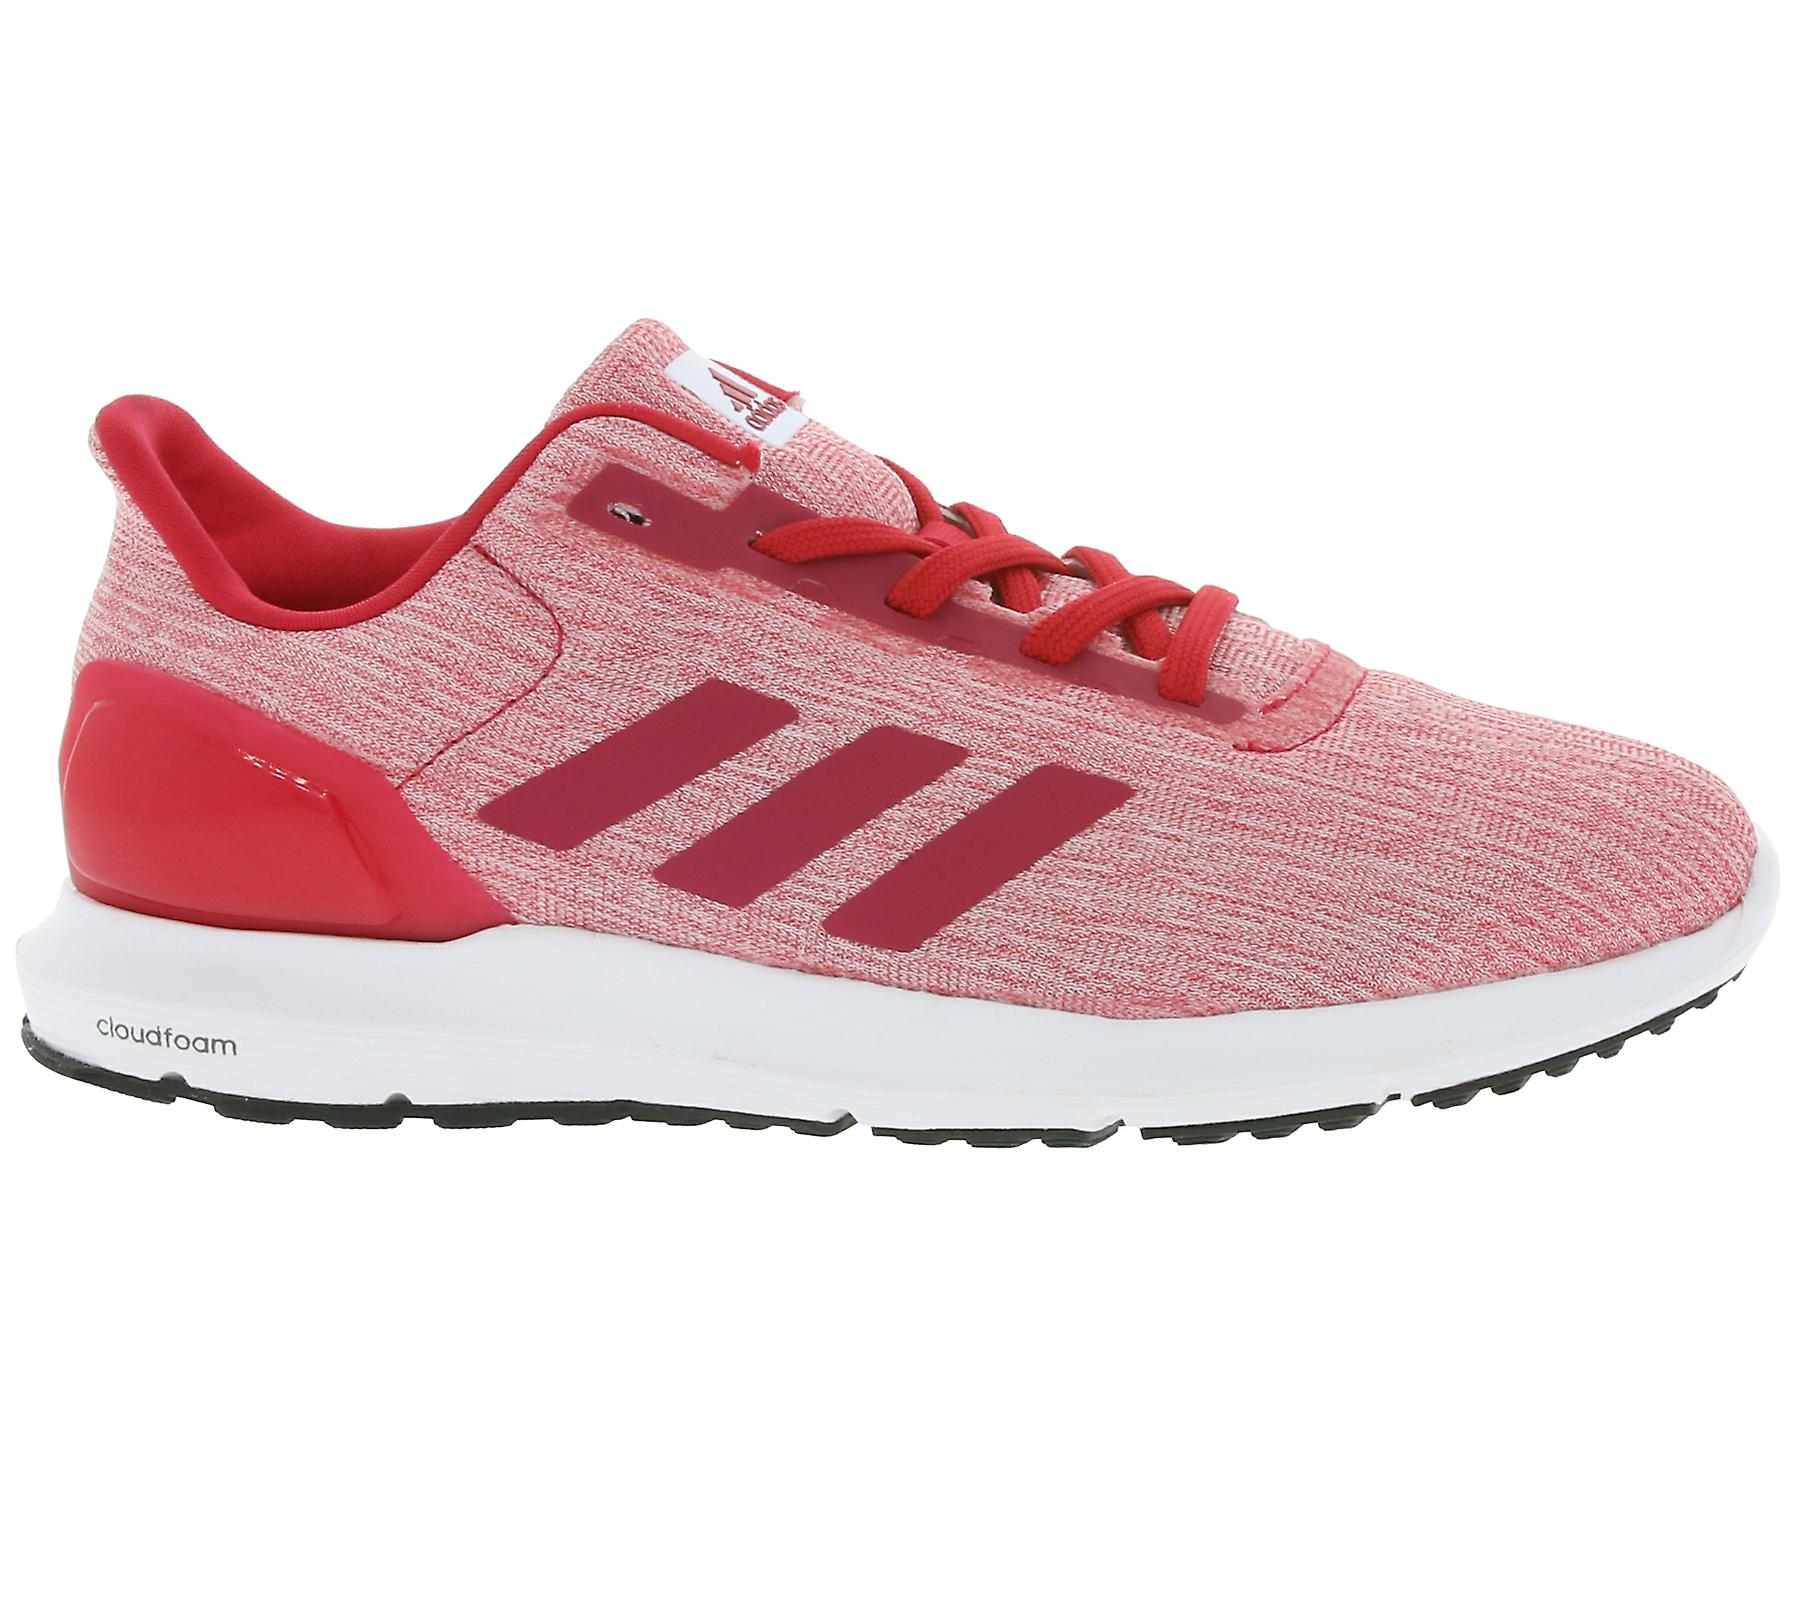 W shoes 2 women's Rosa S80661 adidas cosmic performance running Adidas t1nY7